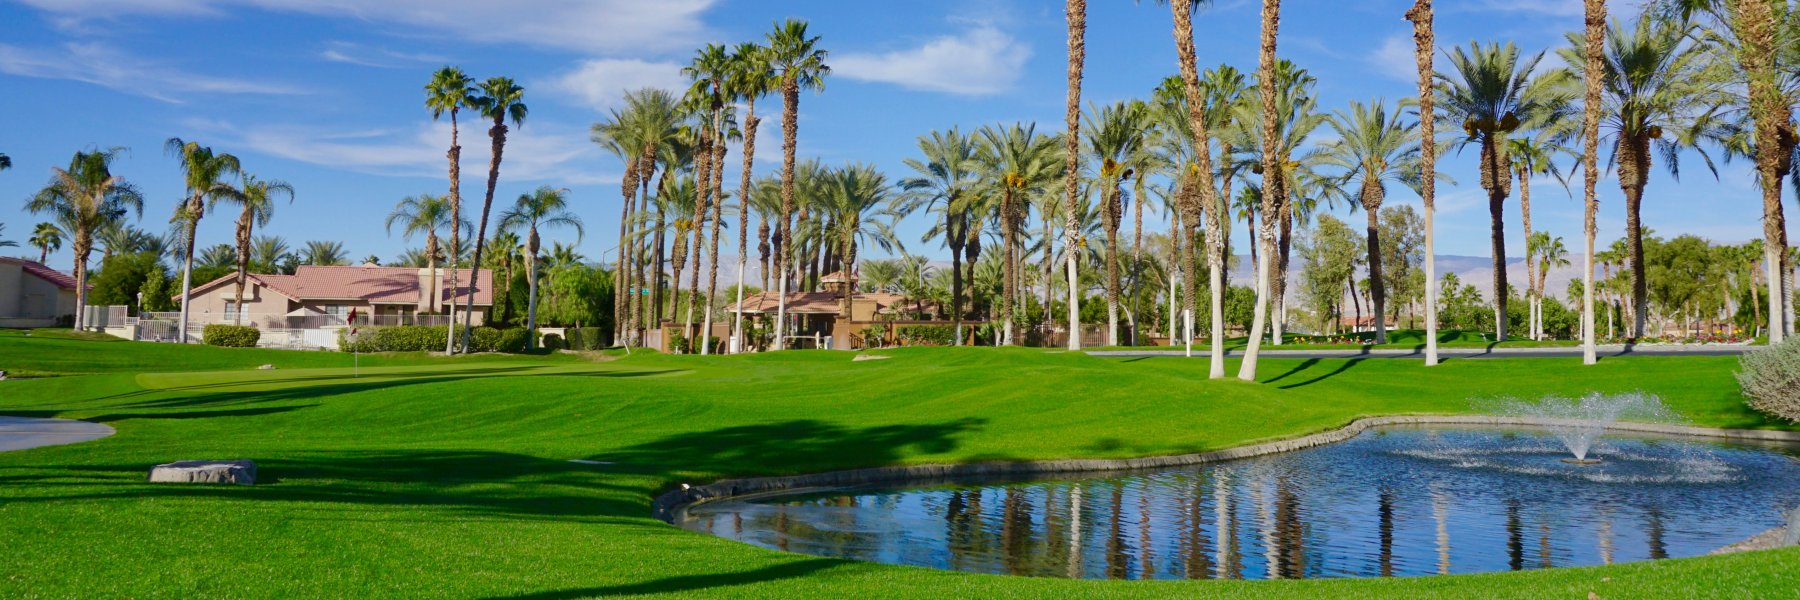 Oasis Country Club is a community of homes in Palm Desert California